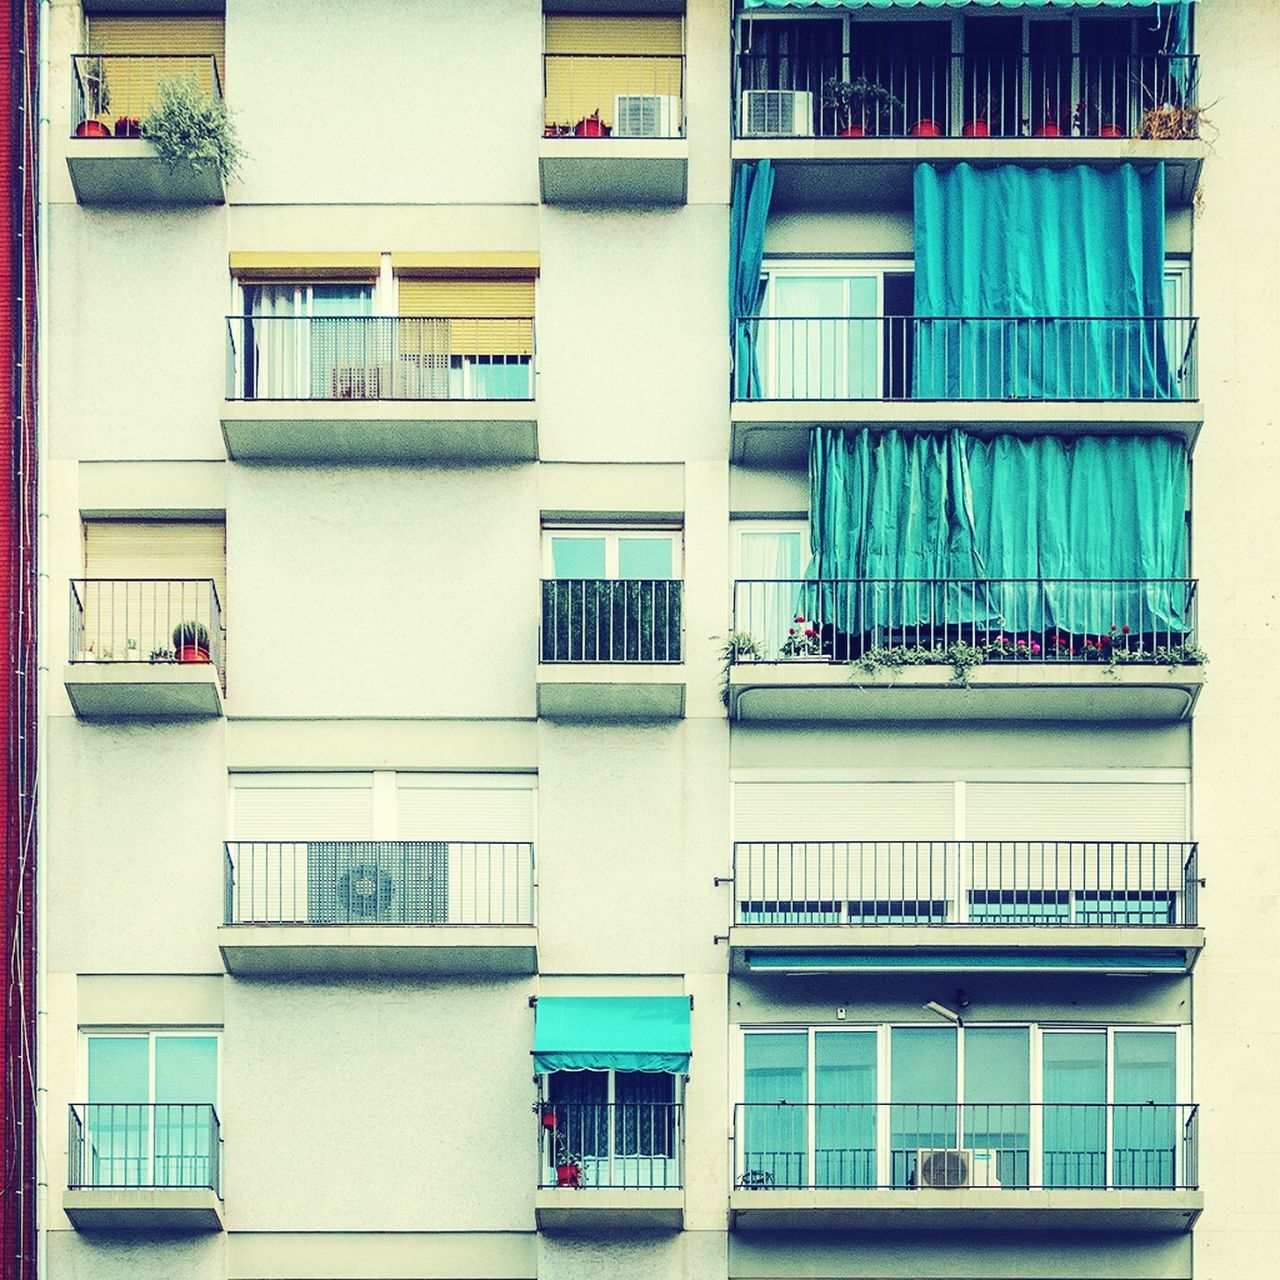 architecture, balcony, building exterior, window, built structure, no people, bookshelf, outdoors, day, apartment